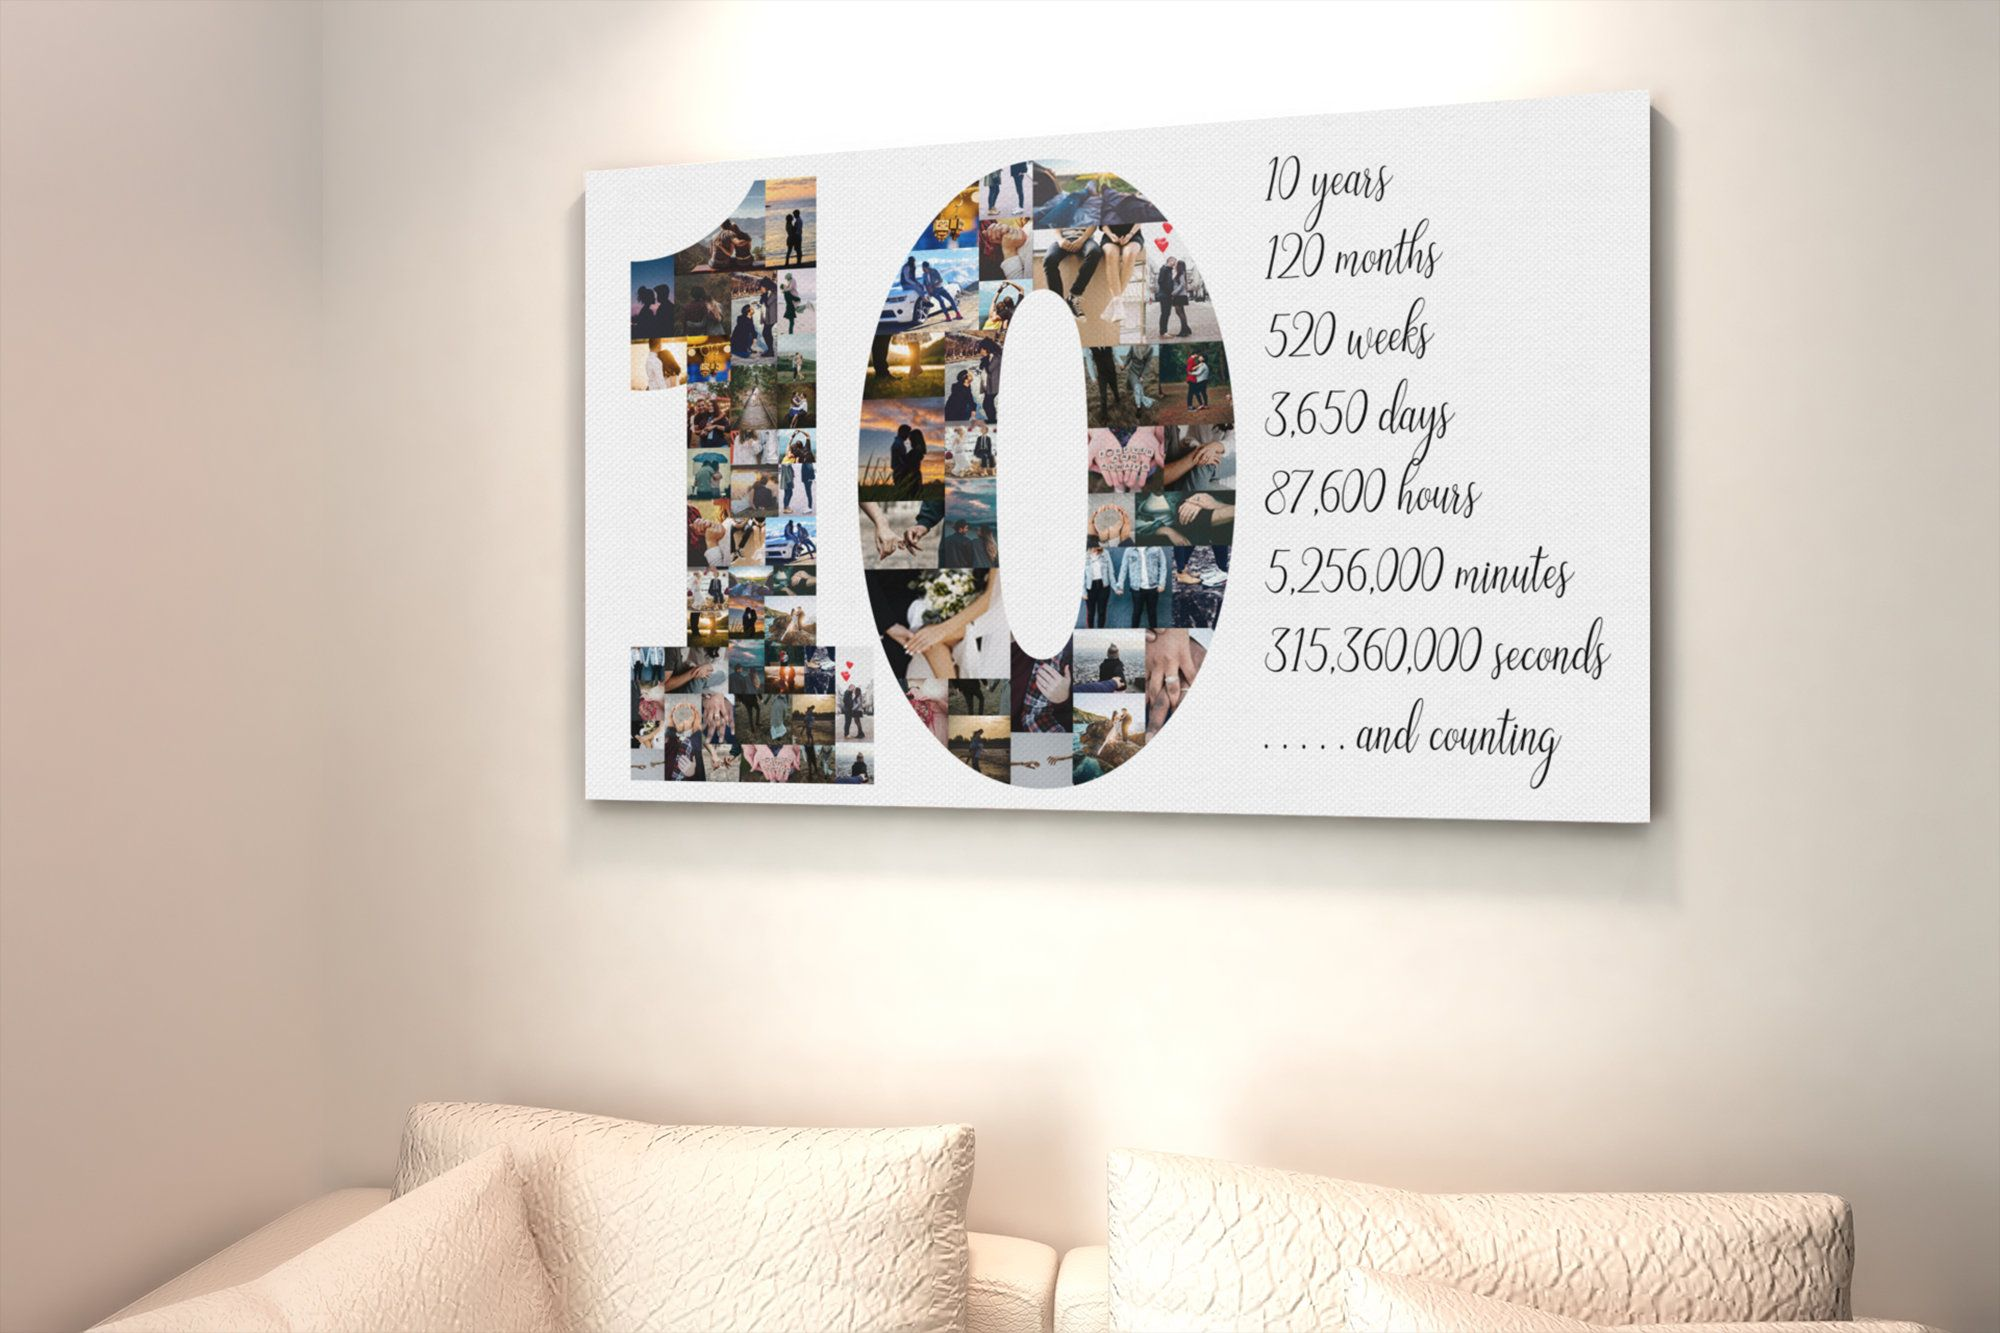 Custom 10th Anniversary Gift For Husband 10 Year Anniversary Etsy In 2020 10th Anniversary Gifts Anniversary Gifts For Parents 20th Anniversary Gifts